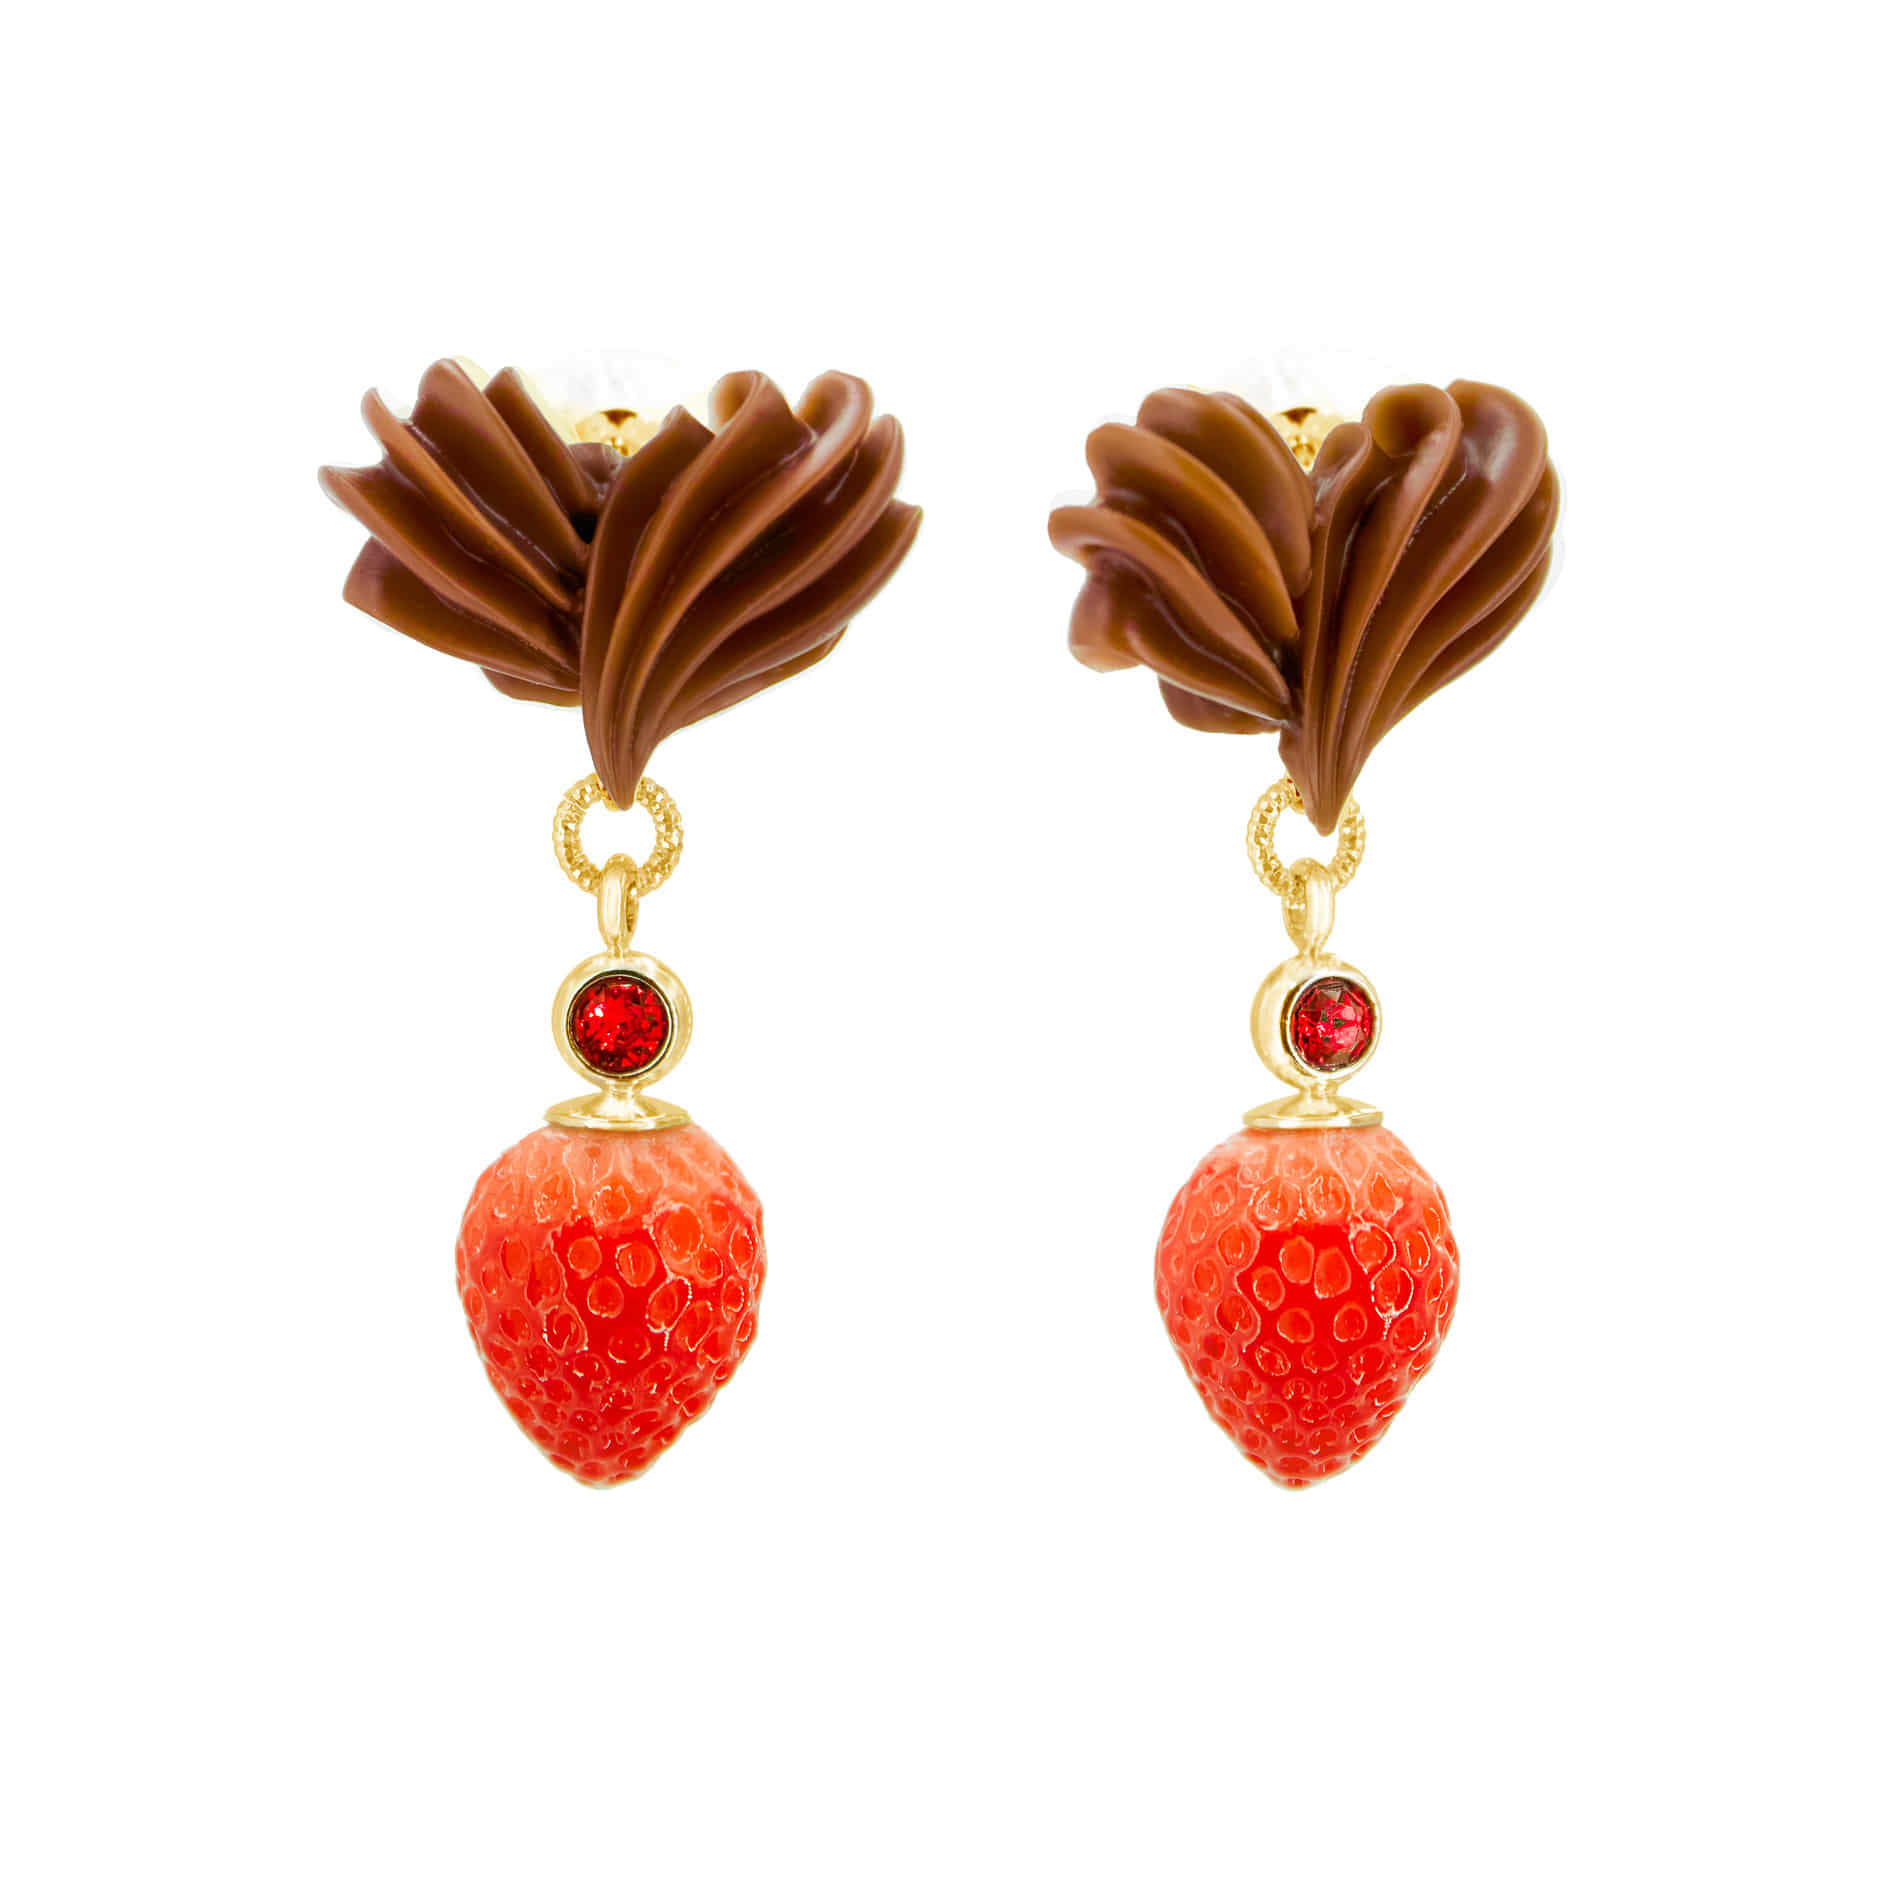 WHIPPING CREAM STRAWBERRY DROP EARRINGS (BROWN)